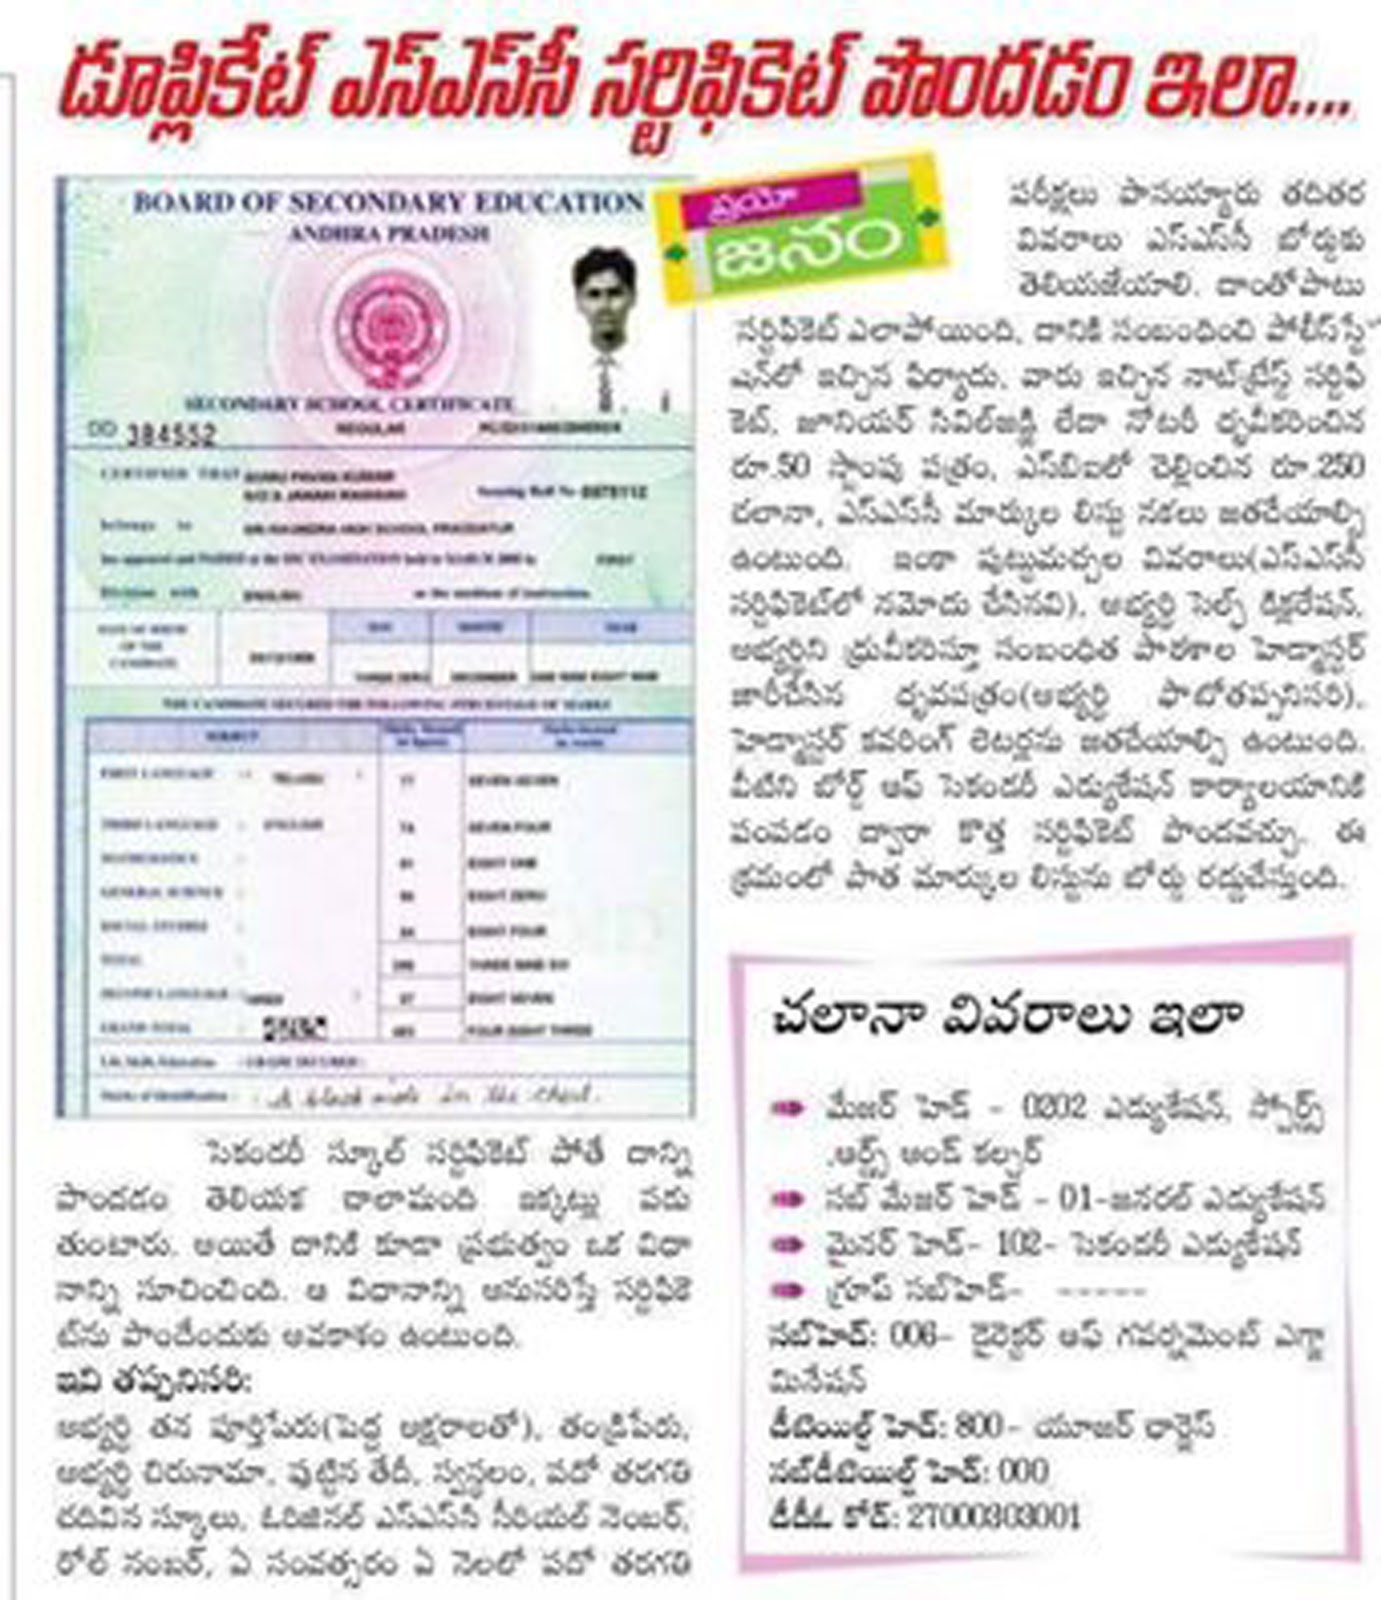 Harini Media Education Ssc Duplicate Certificate